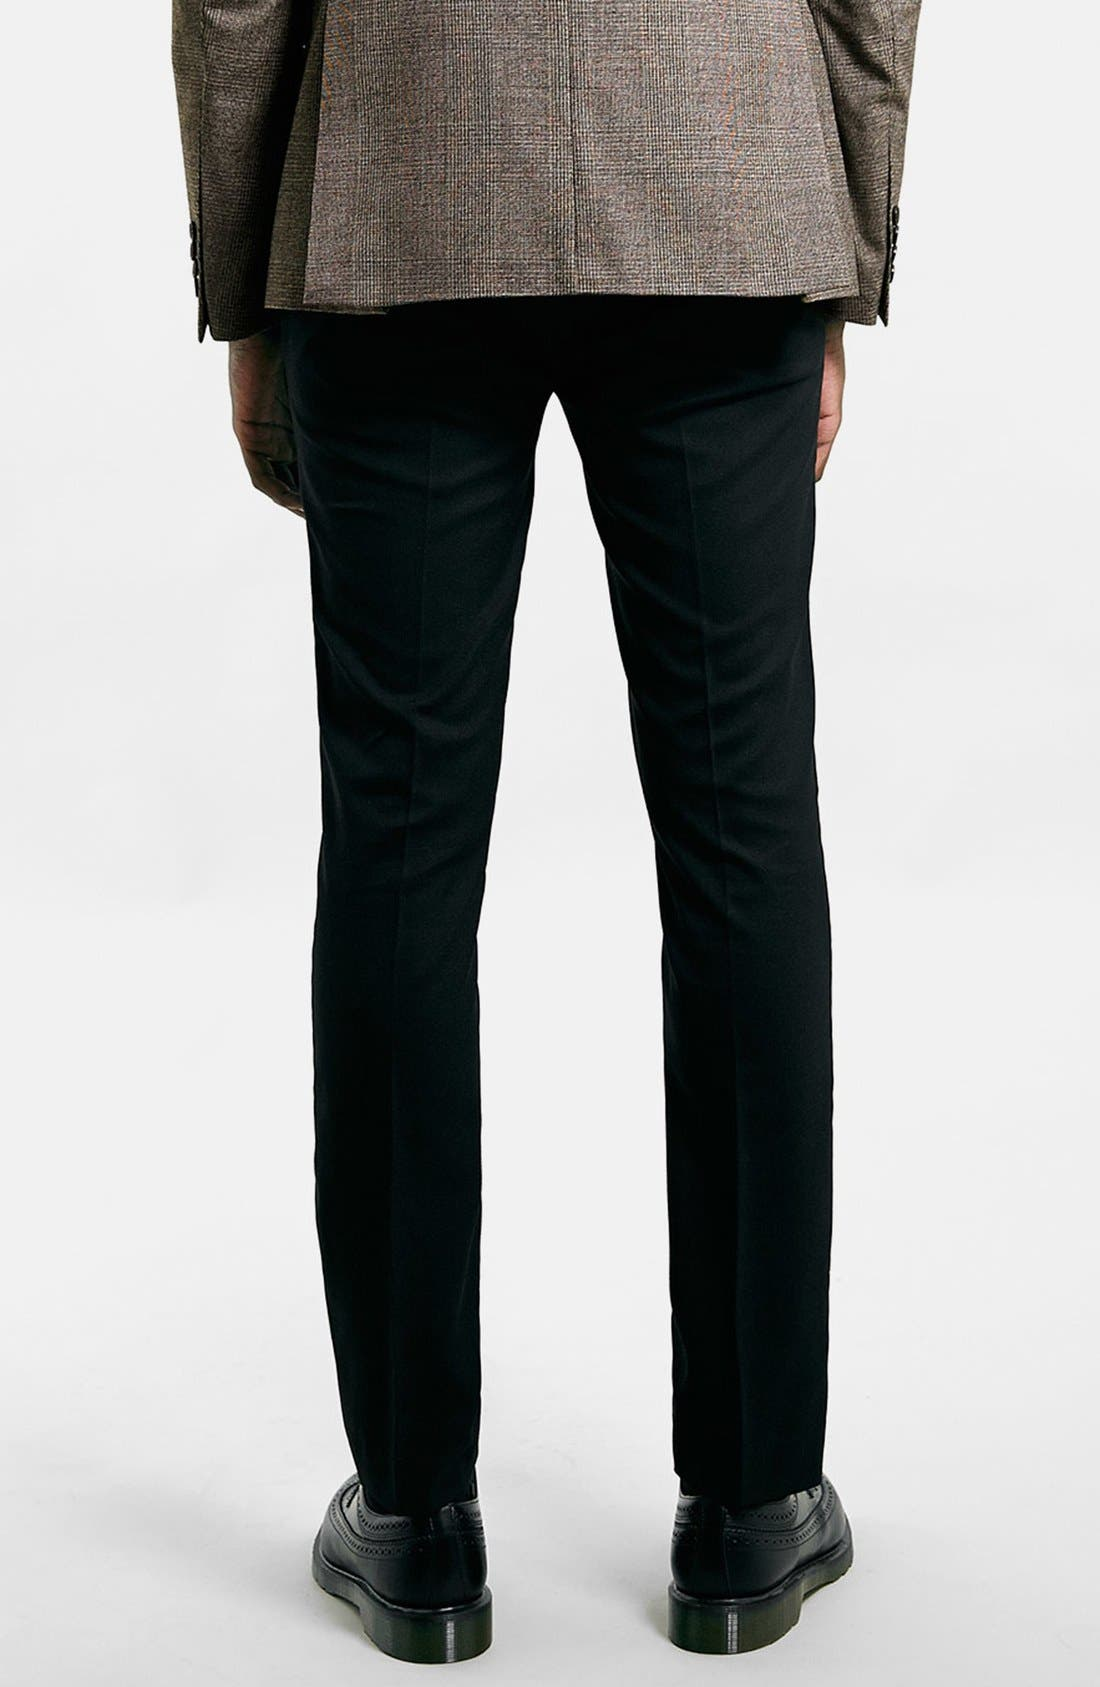 Ultra Skinny Black Suit Trousers,                             Alternate thumbnail 3, color,                             Black